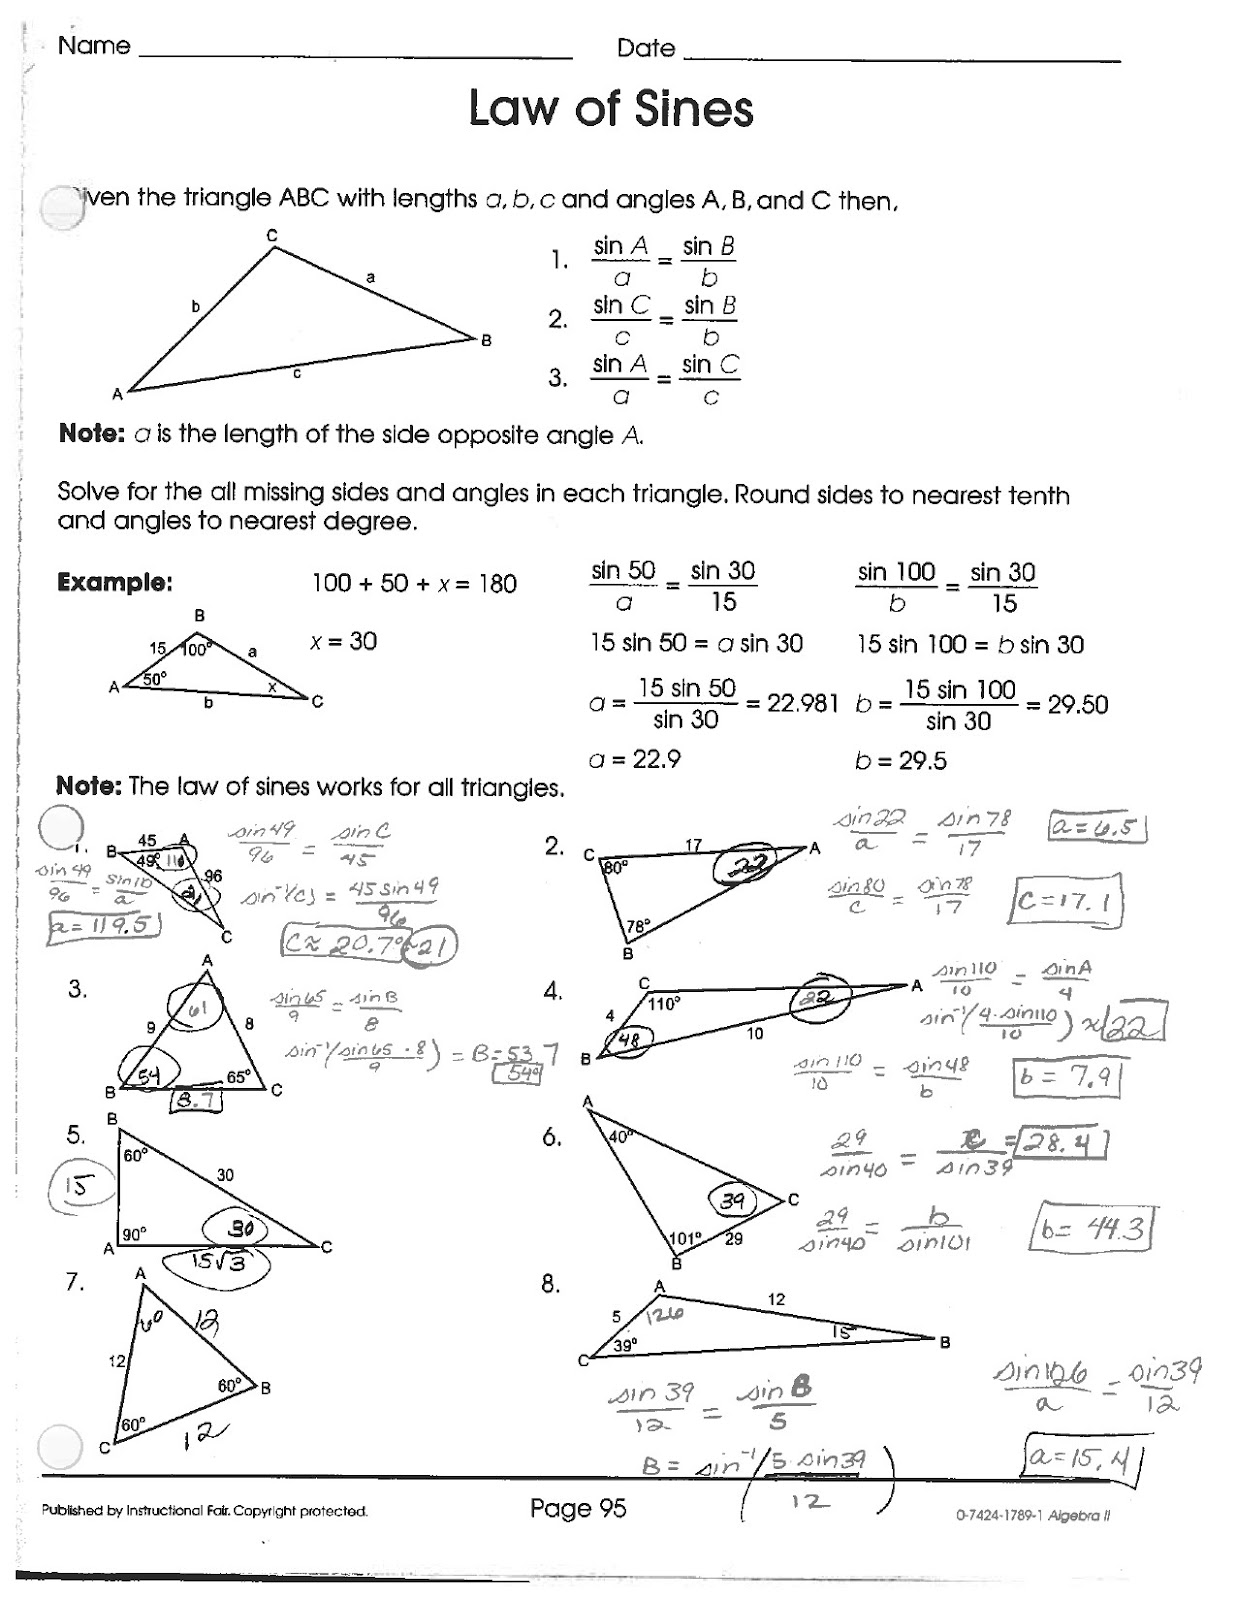 Worksheet Law Of Sines And Cosines Worksheet math classes spring 2012 pre calc laws of sines and cosines worksheet